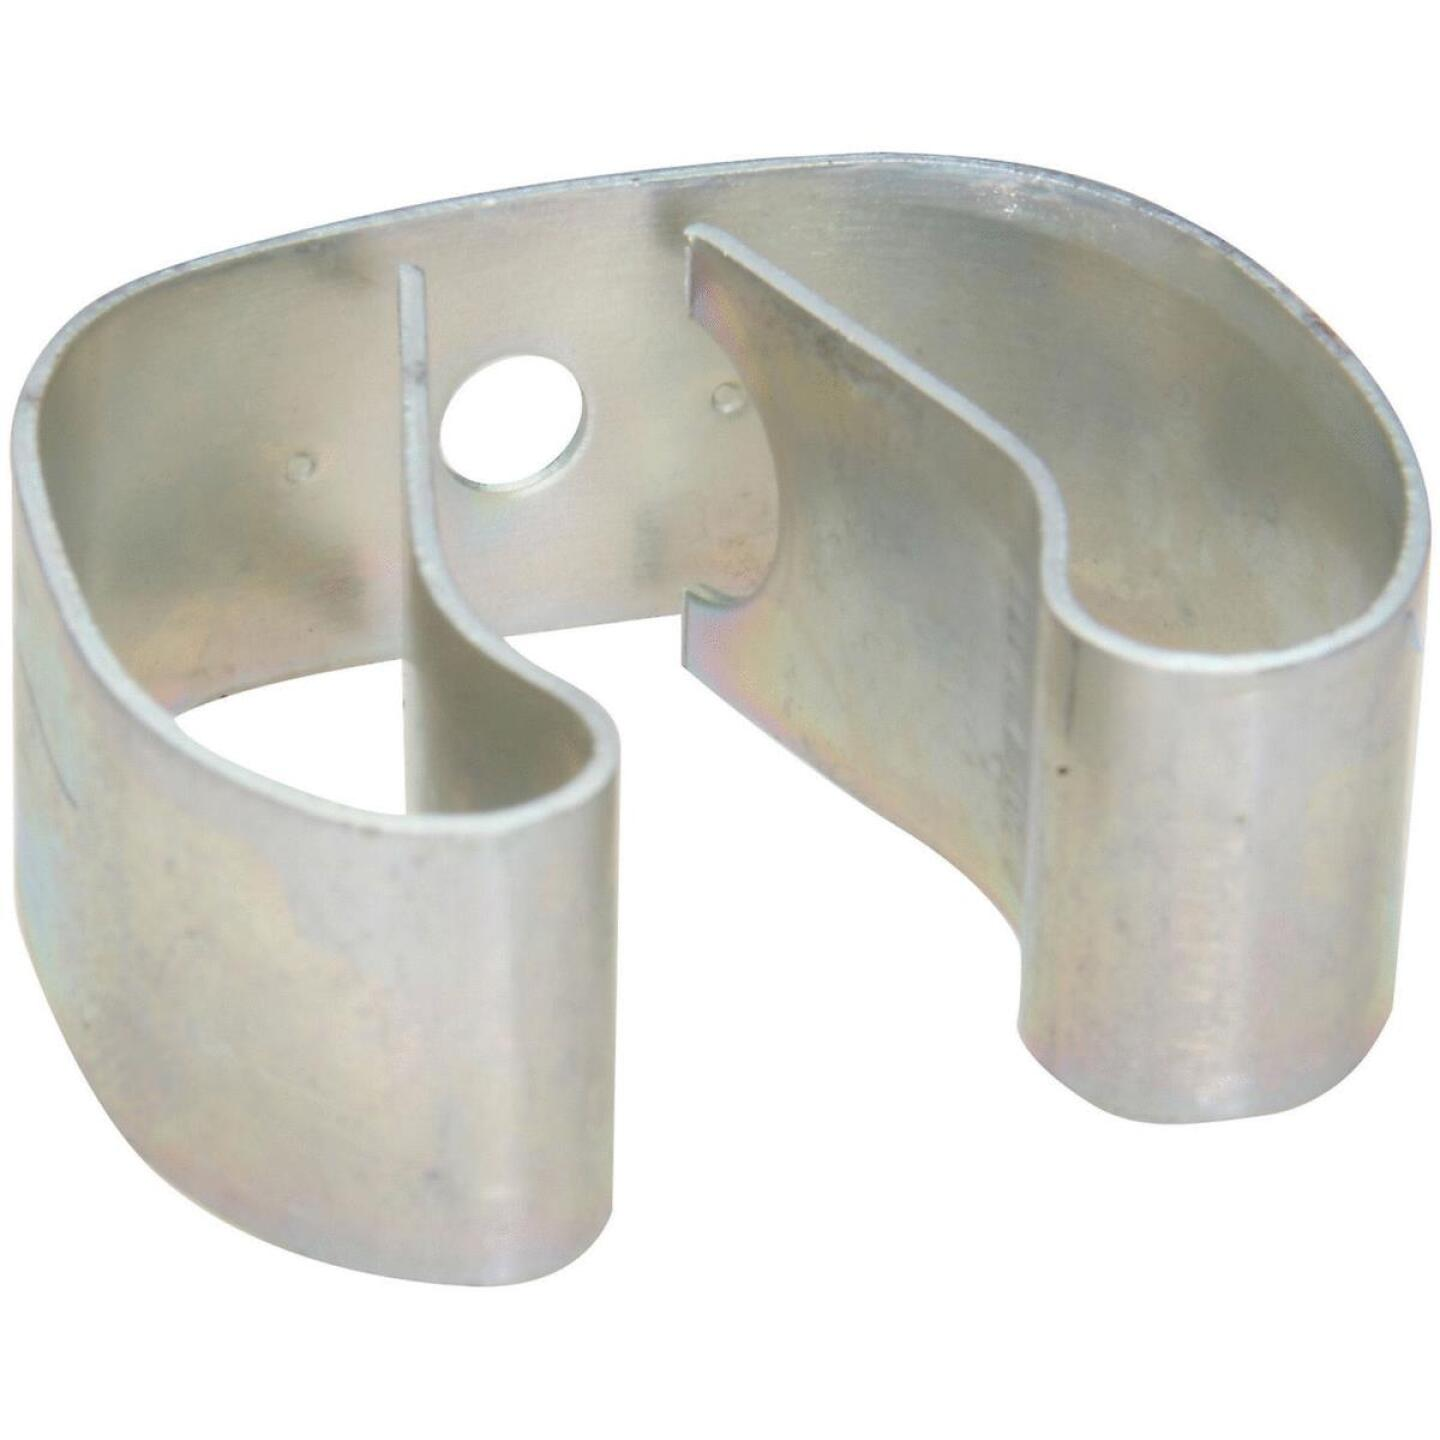 National Rust-Resistant Spring Grip Clip Hook Image 1